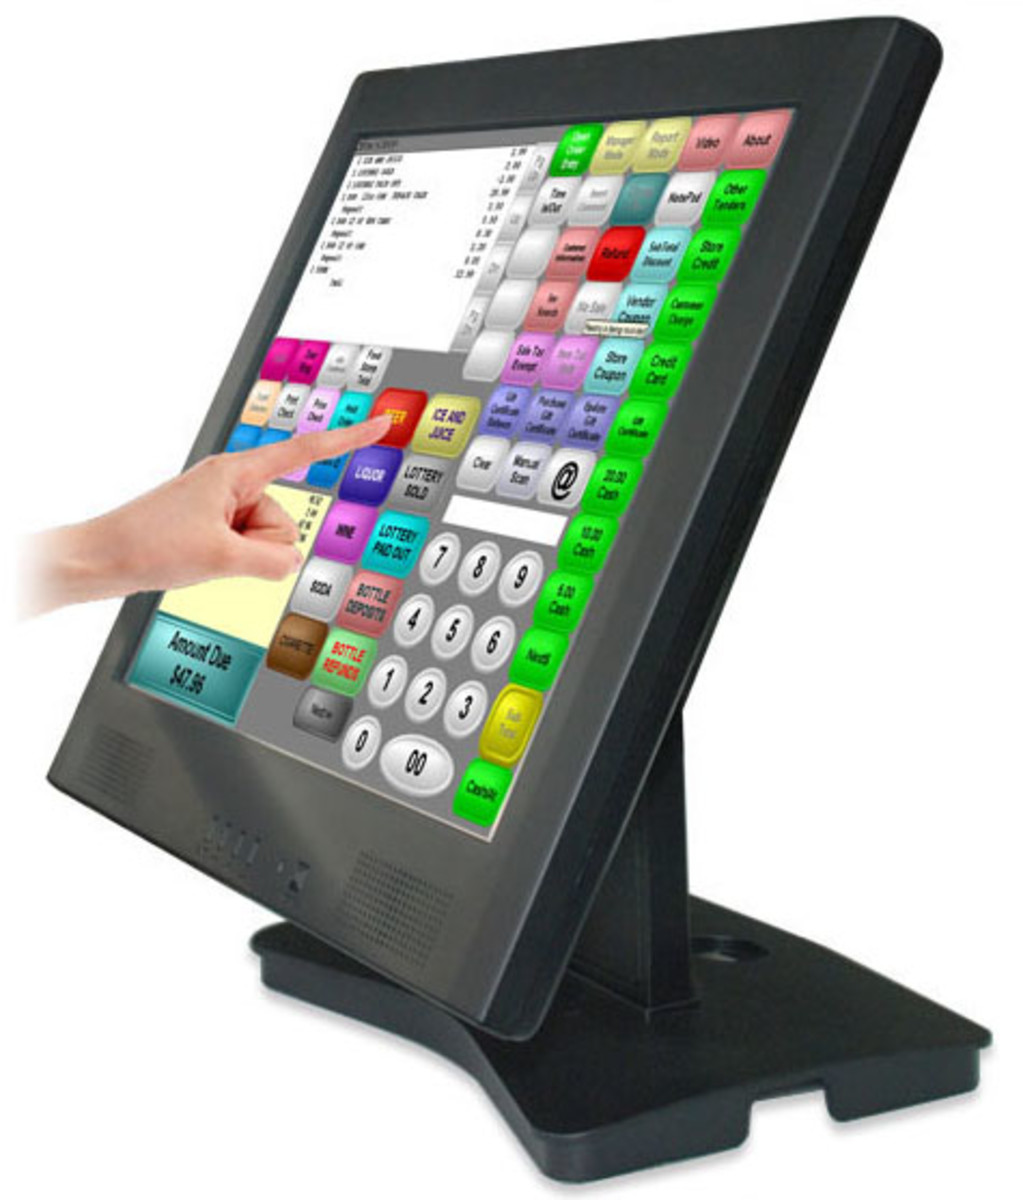 Touch Screen Monitor for Business Application